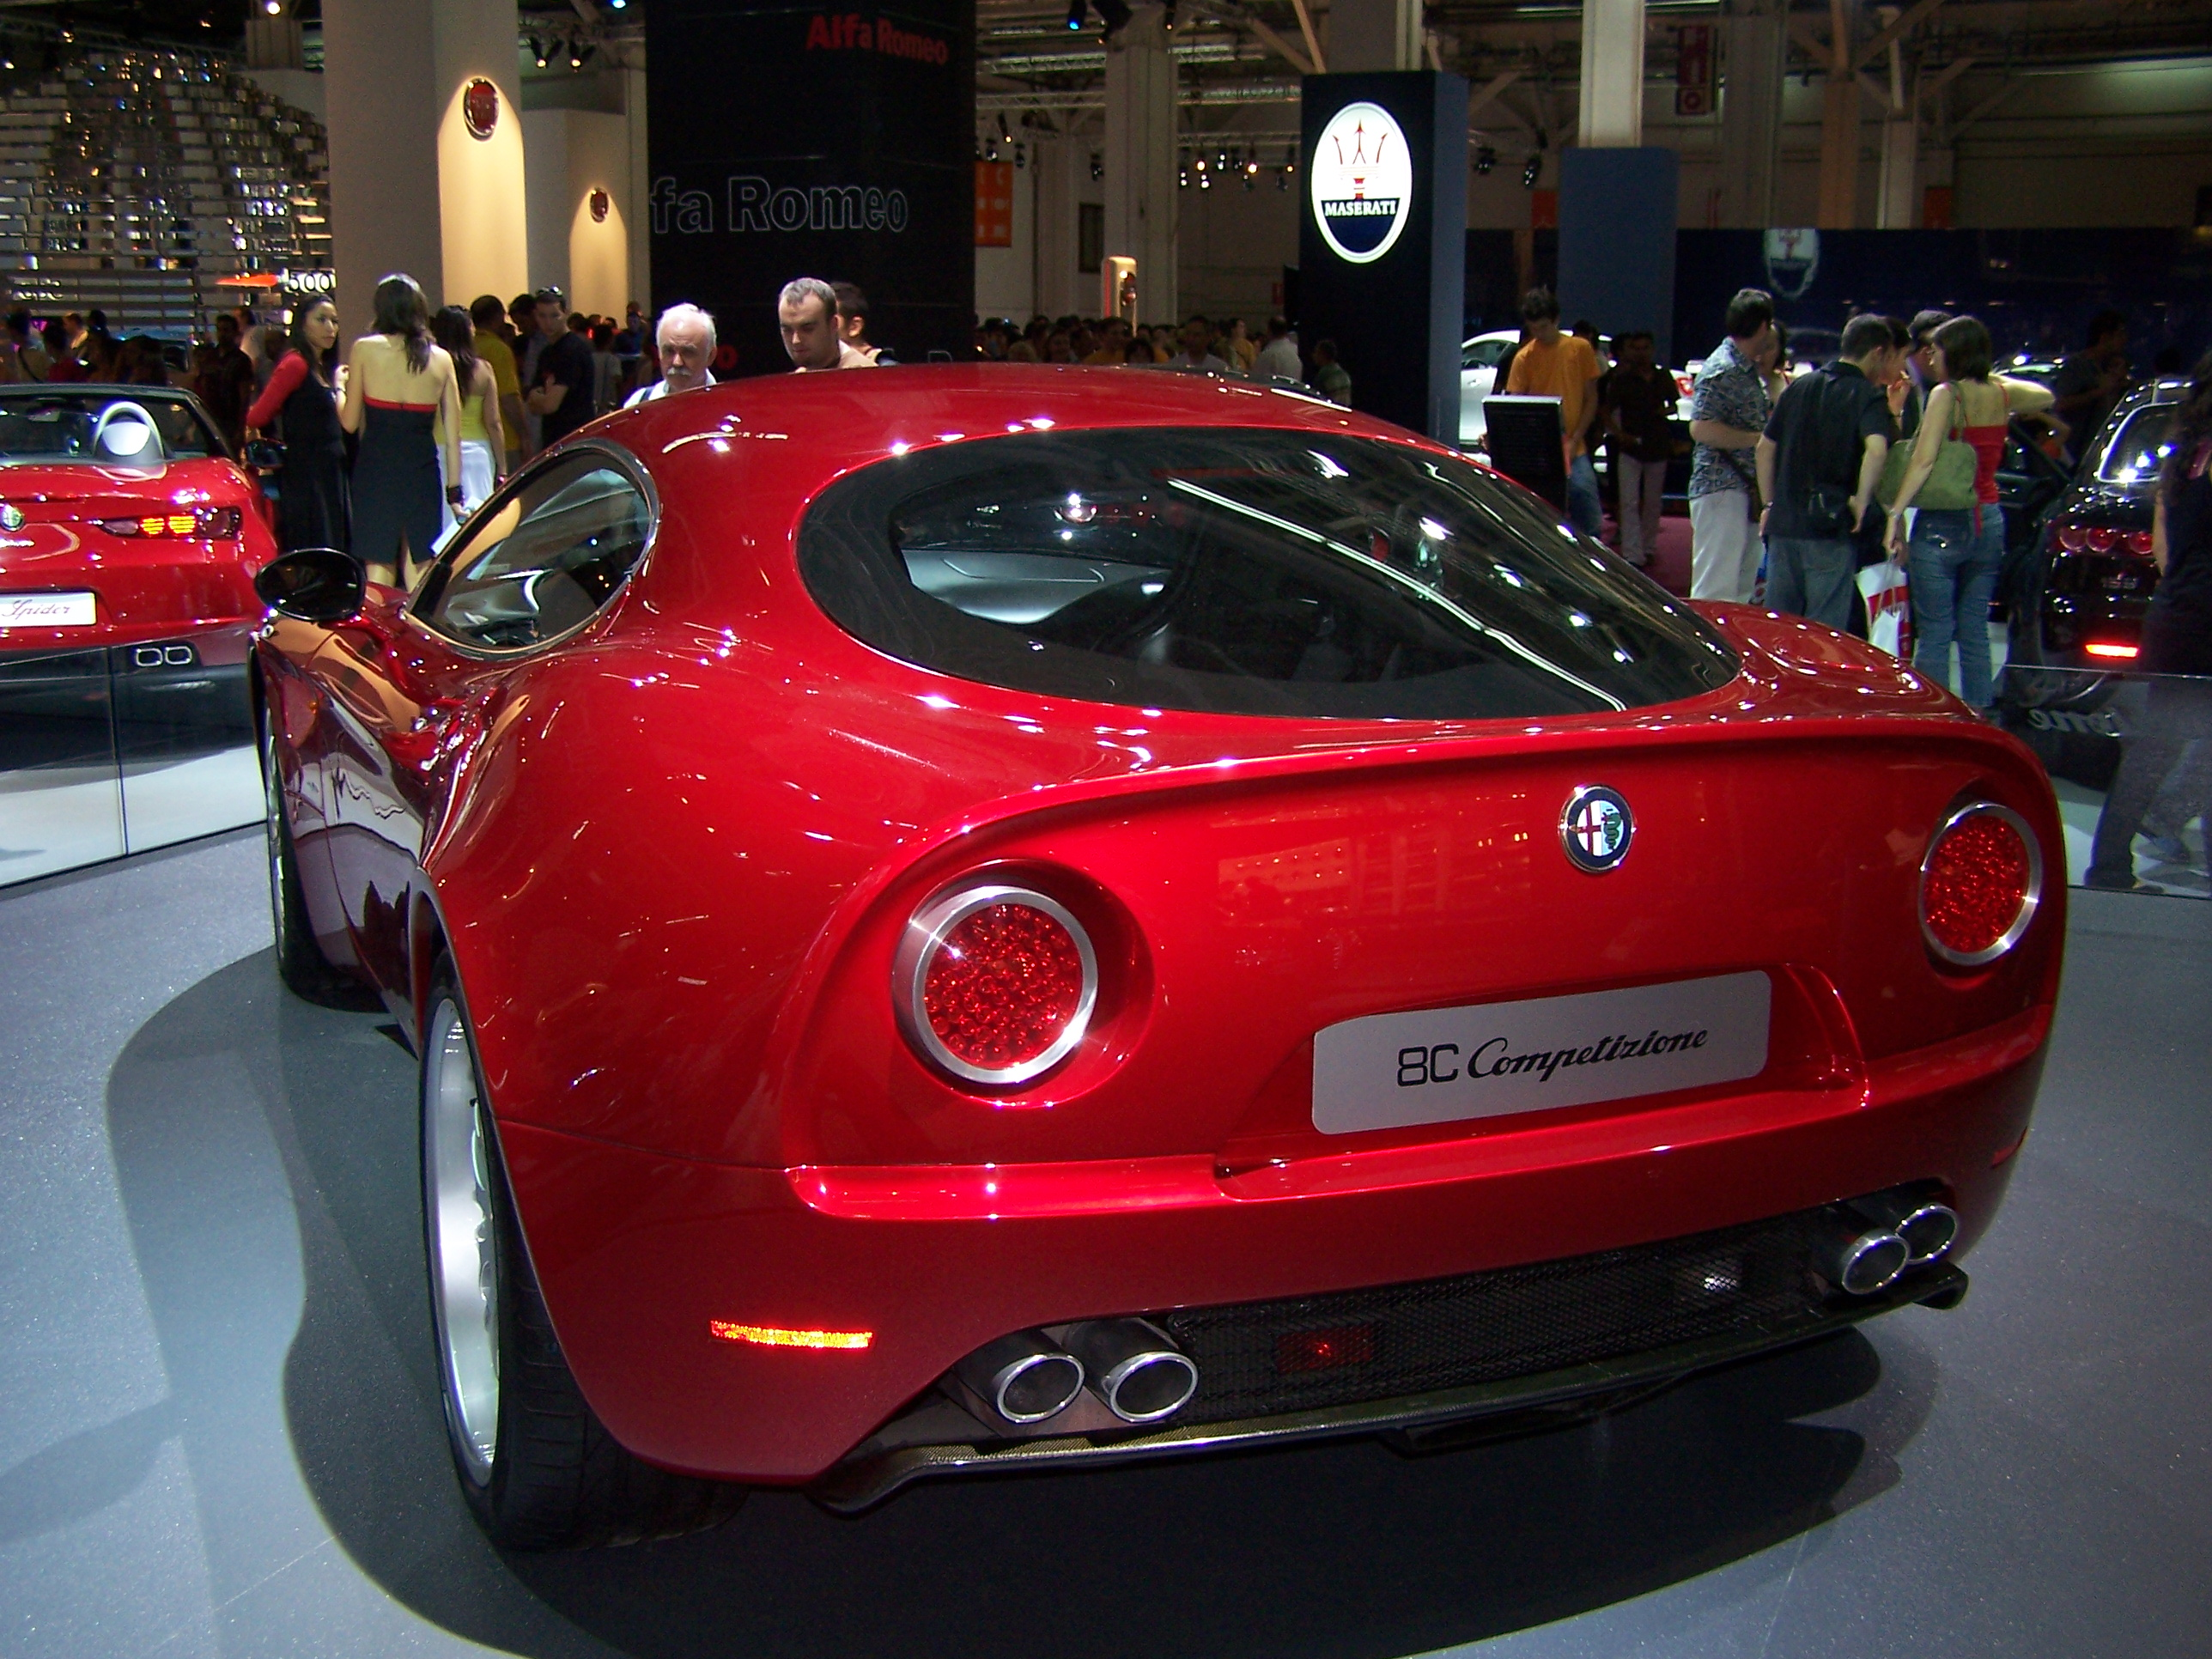 alfa romeo 8c competizione interesting news with the best alfa romeo. Cars Review. Best American Auto & Cars Review